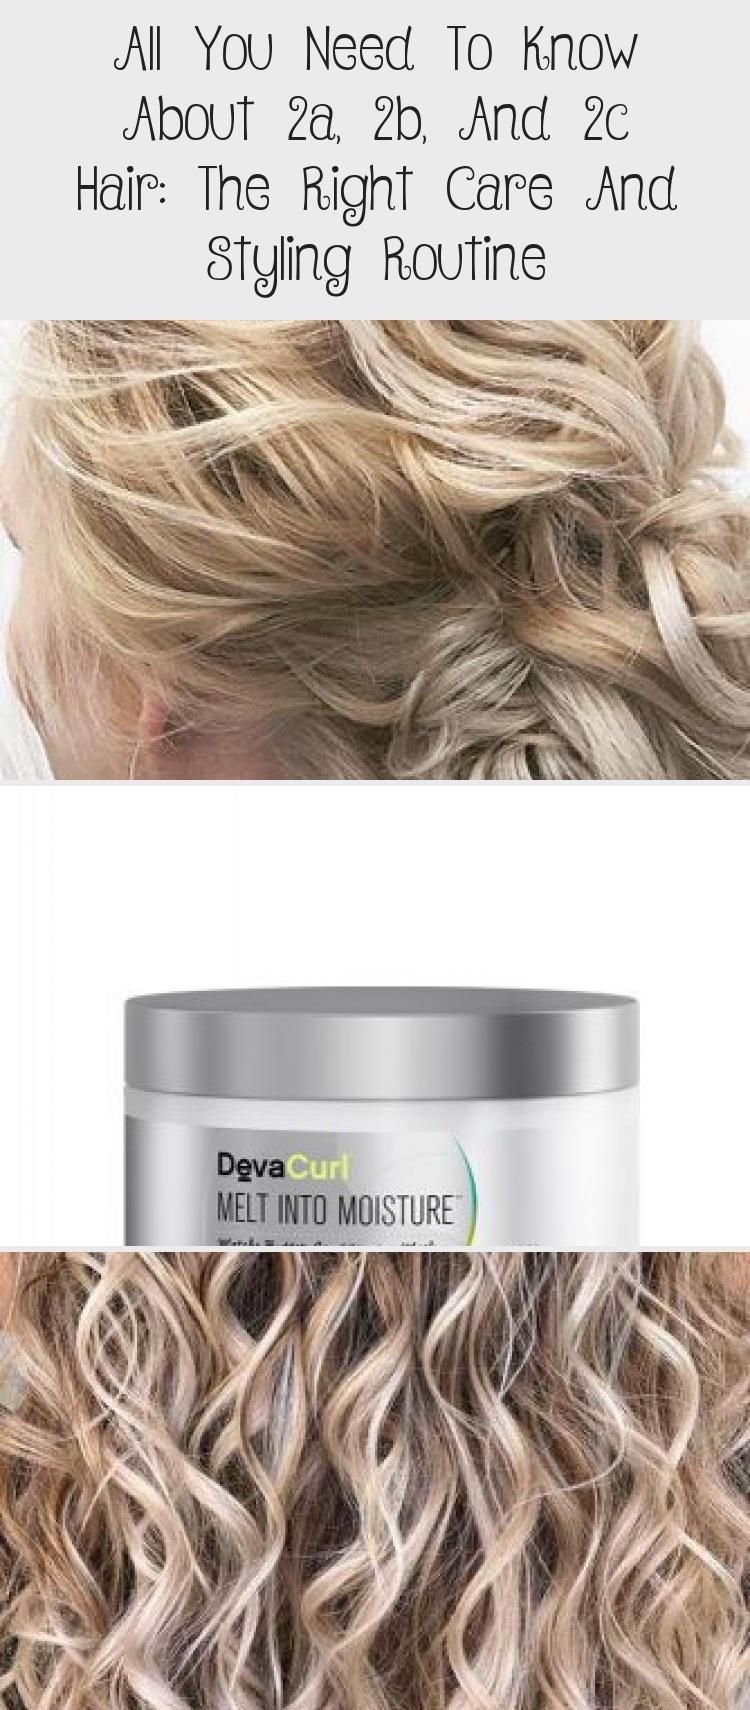 Hair Care All You Need To Know About 2a 2b And 2c Hair The Right Care And Styling Routine Hairstyles Ha Hair Care Green Hair Care Daily Hair Conditioner